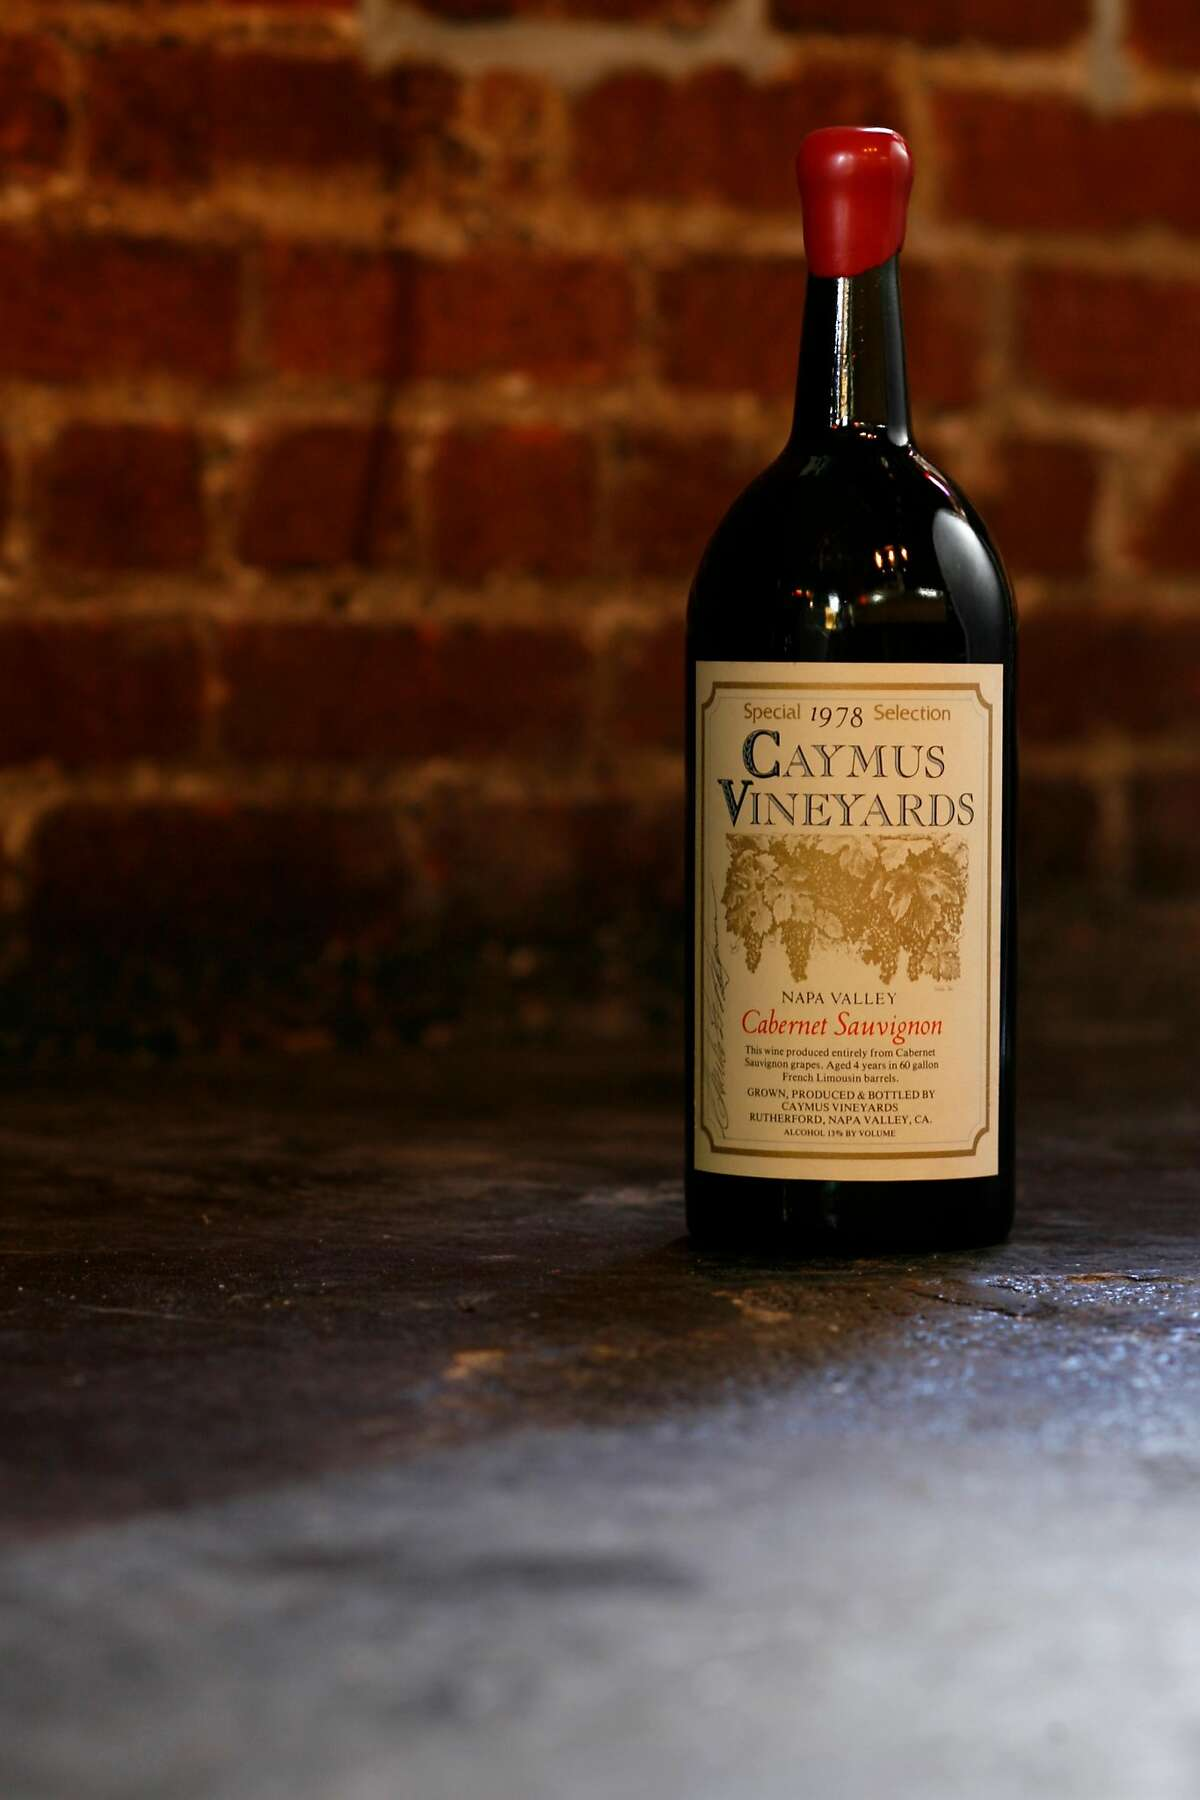 CaymusVineyards' CabernetSauvignon, pictured here in its 1978 vintage, is one ofNapaValley's most recognizable wines. Craig Lee / The Chronicle